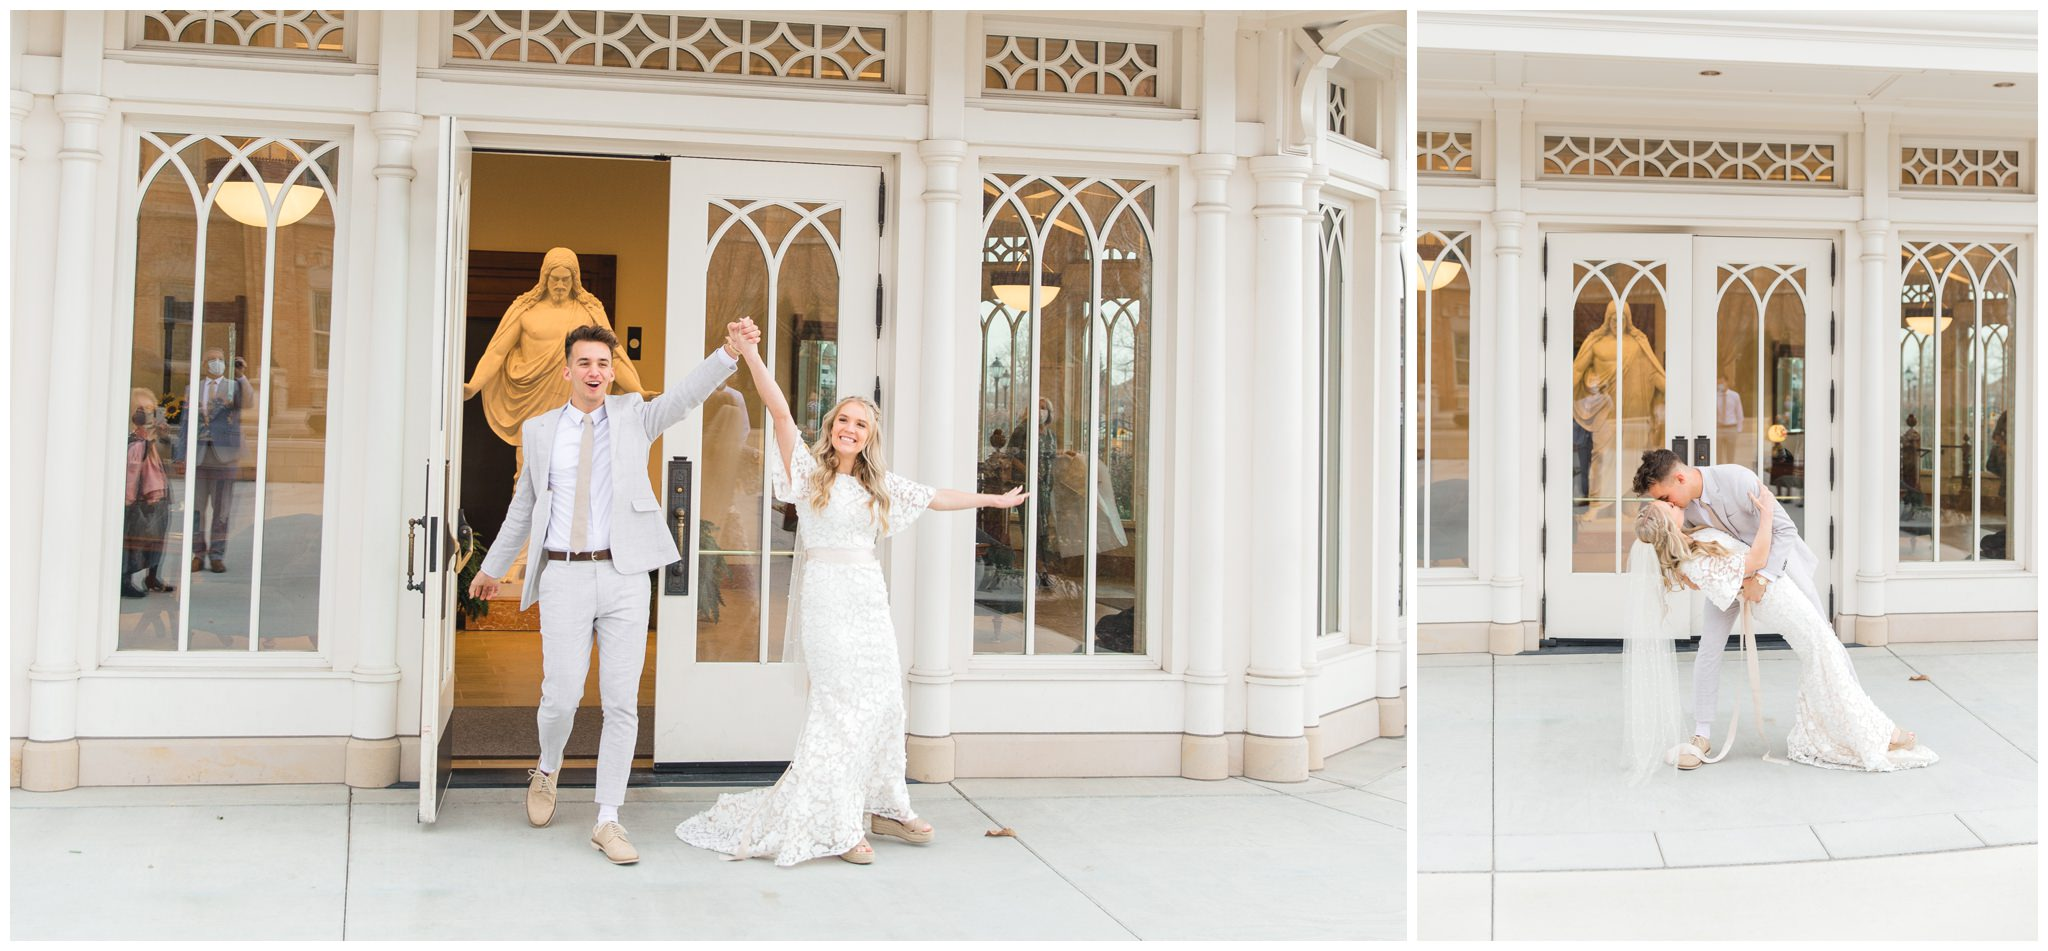 Bride and Groom exiting Provo City Center Temple on their wedding day